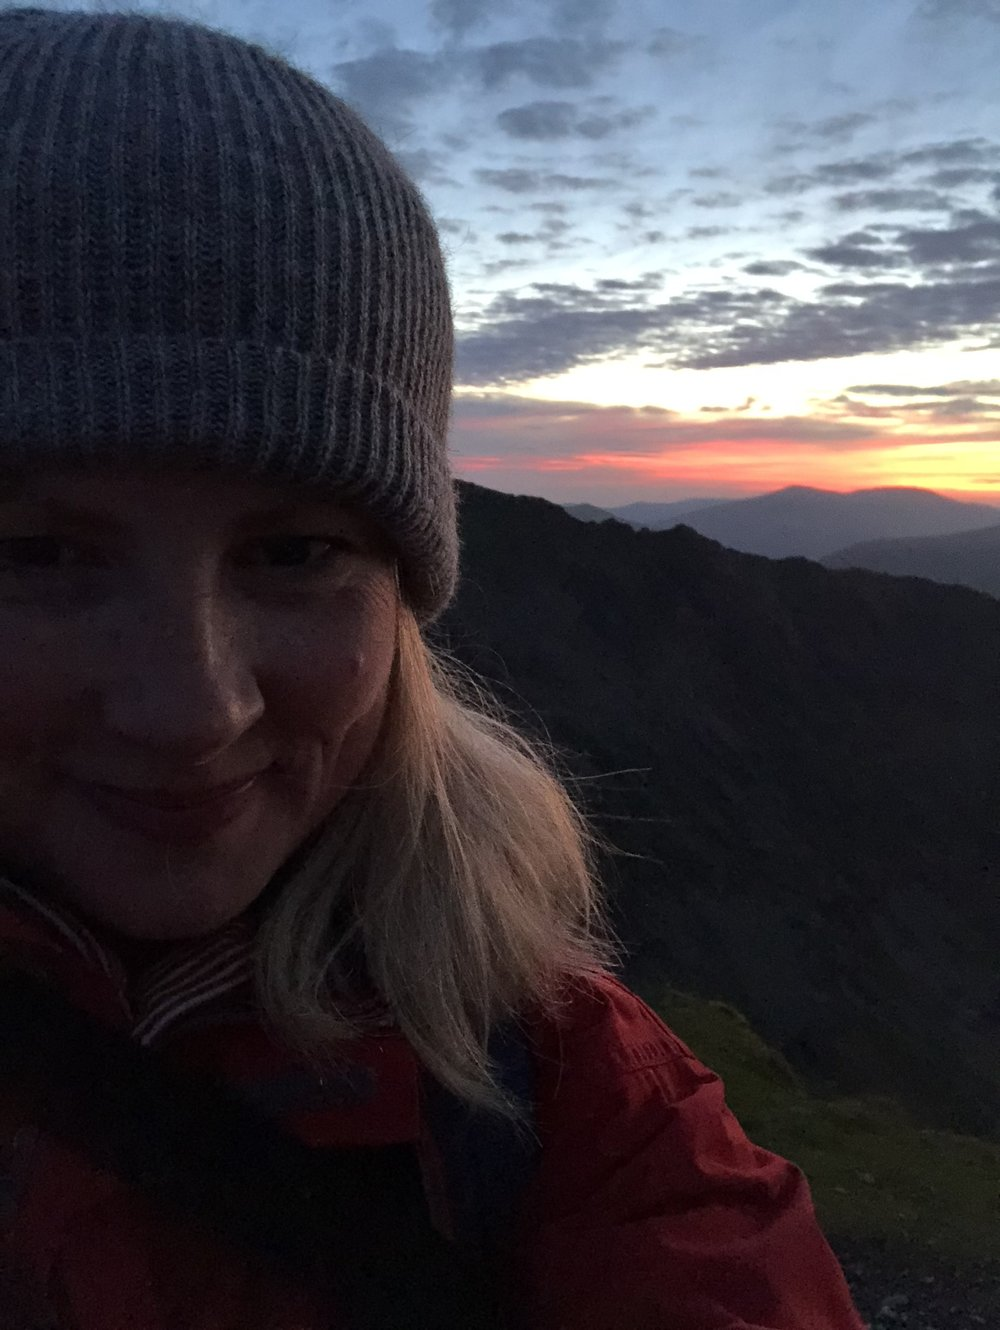 Nearly at the top of Snowdon at 3am. I never stopped smiling even when it got really hard after half way up. My friends kept me going all the way.